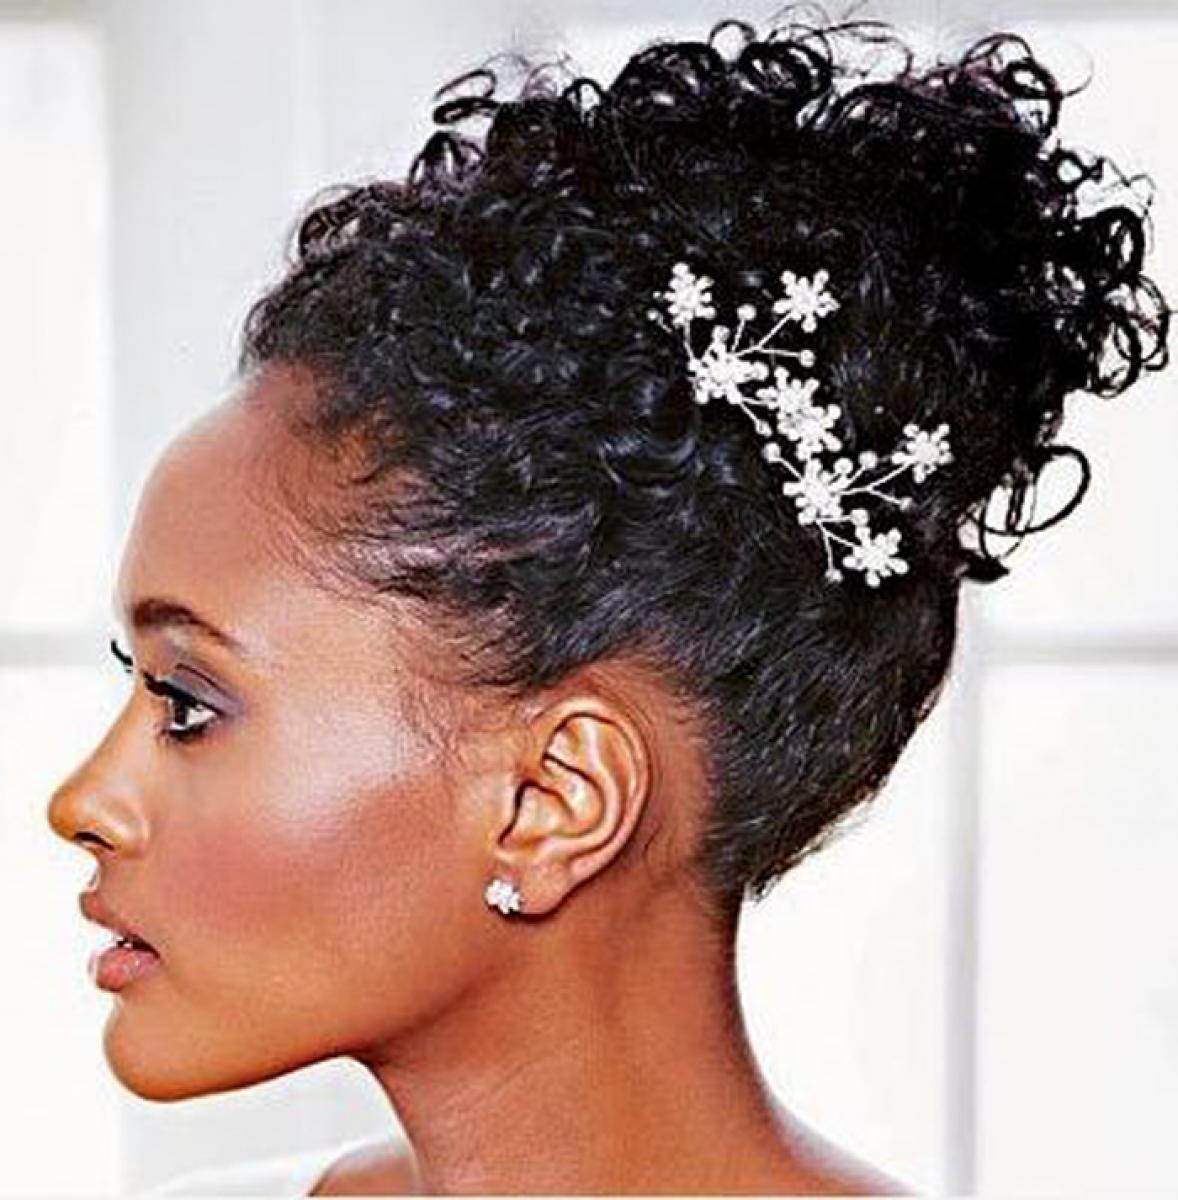 Pictures Of Braided Updo Hairstyles For Black Women